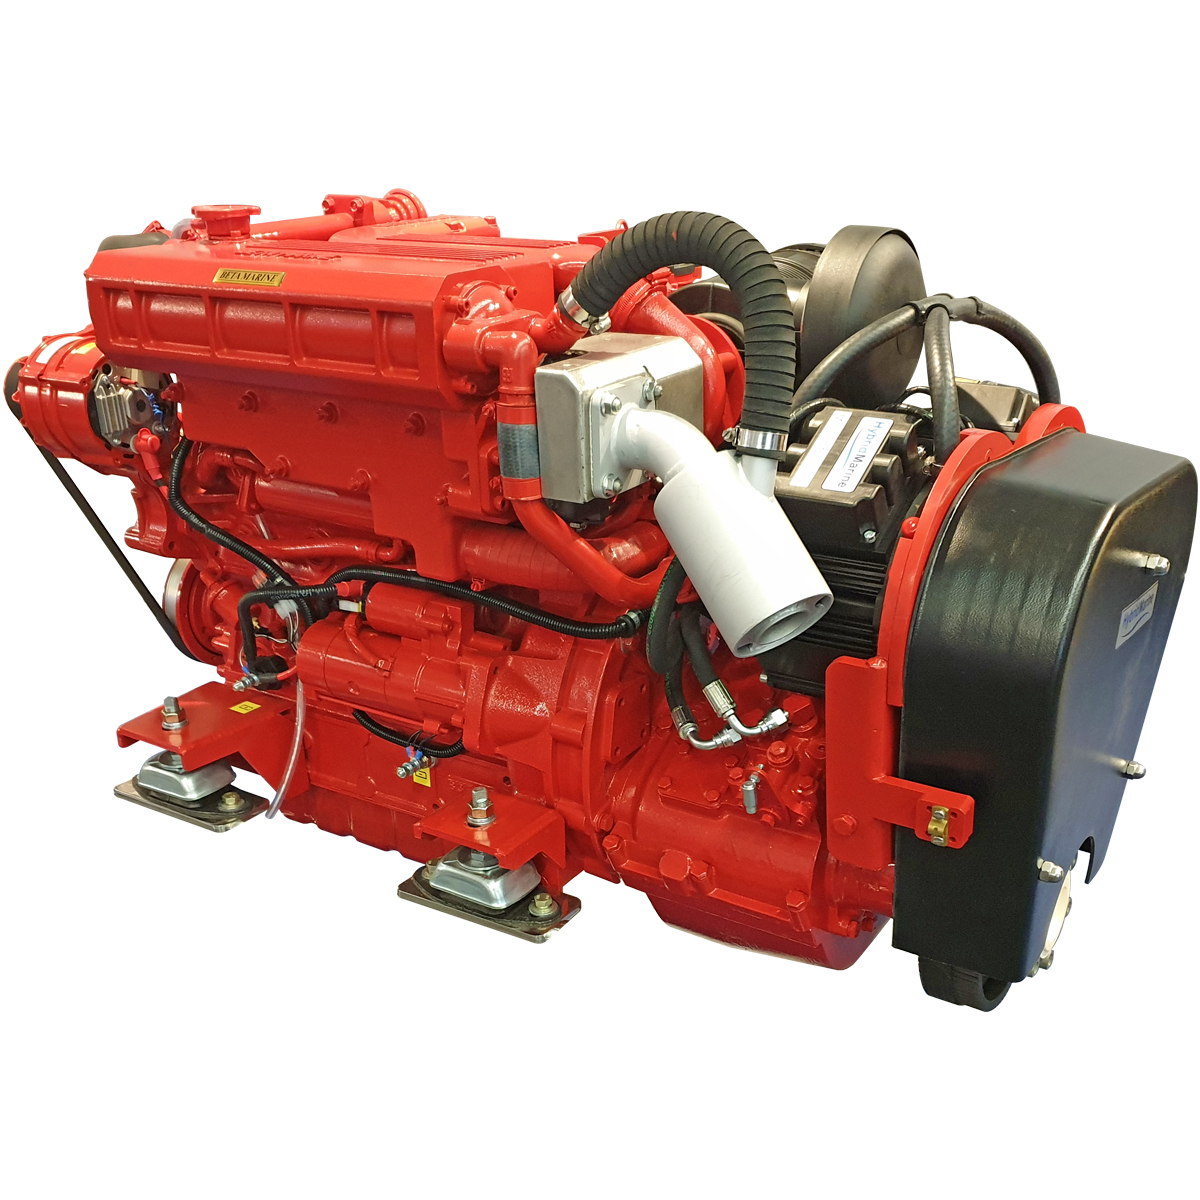 Heat Exchanger Hybrid Propulsion Marine Propulsion Engines Beta Marine